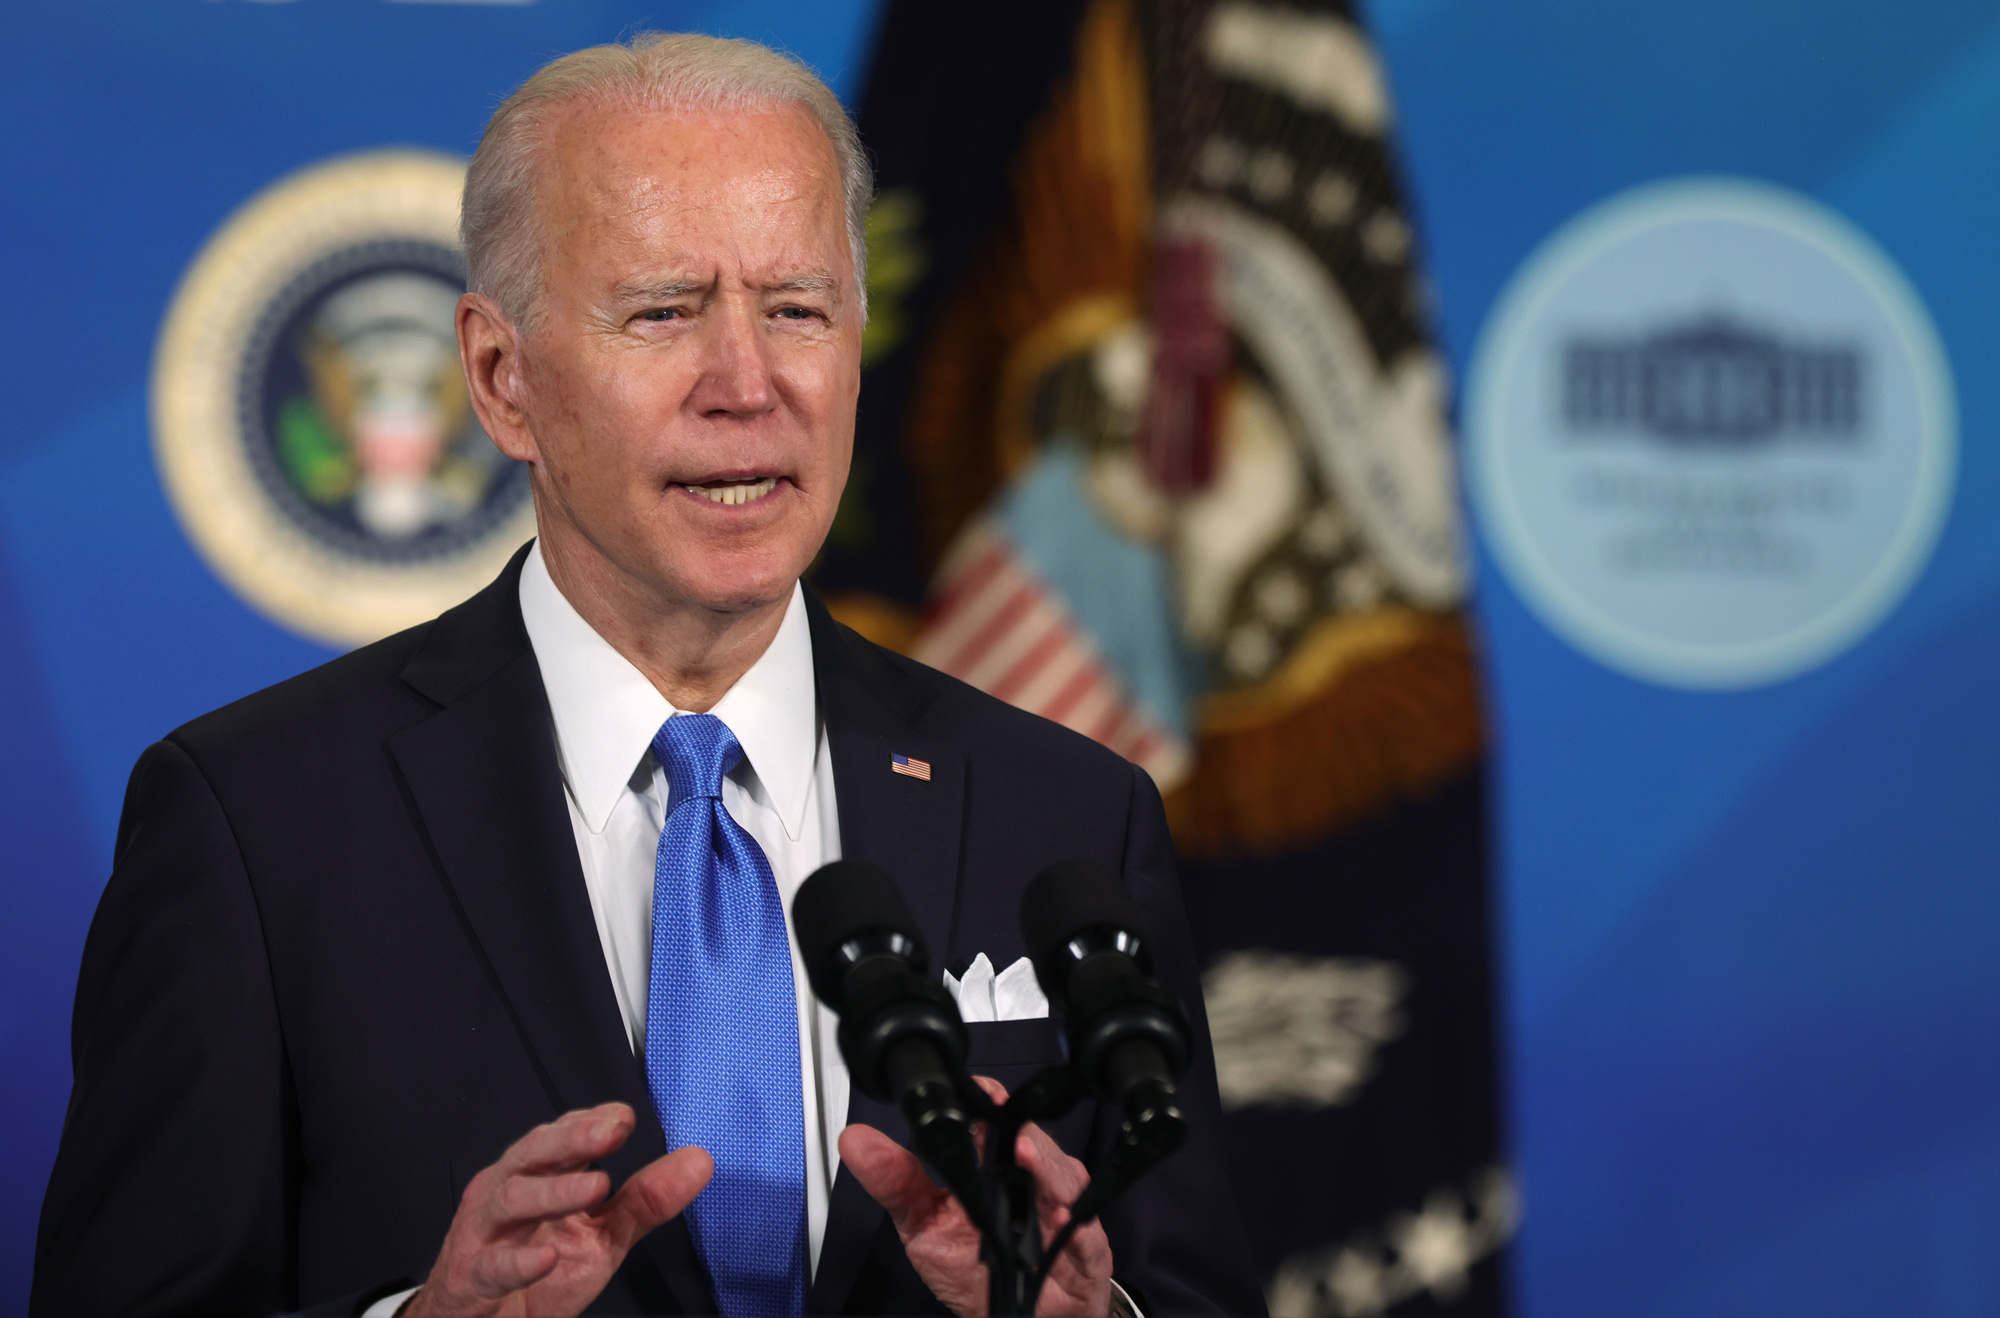 President Joe Biden speaks during an event at the South Court Auditorium of the Eisenhower Executive Office Building on March 10 in Washington, DC.